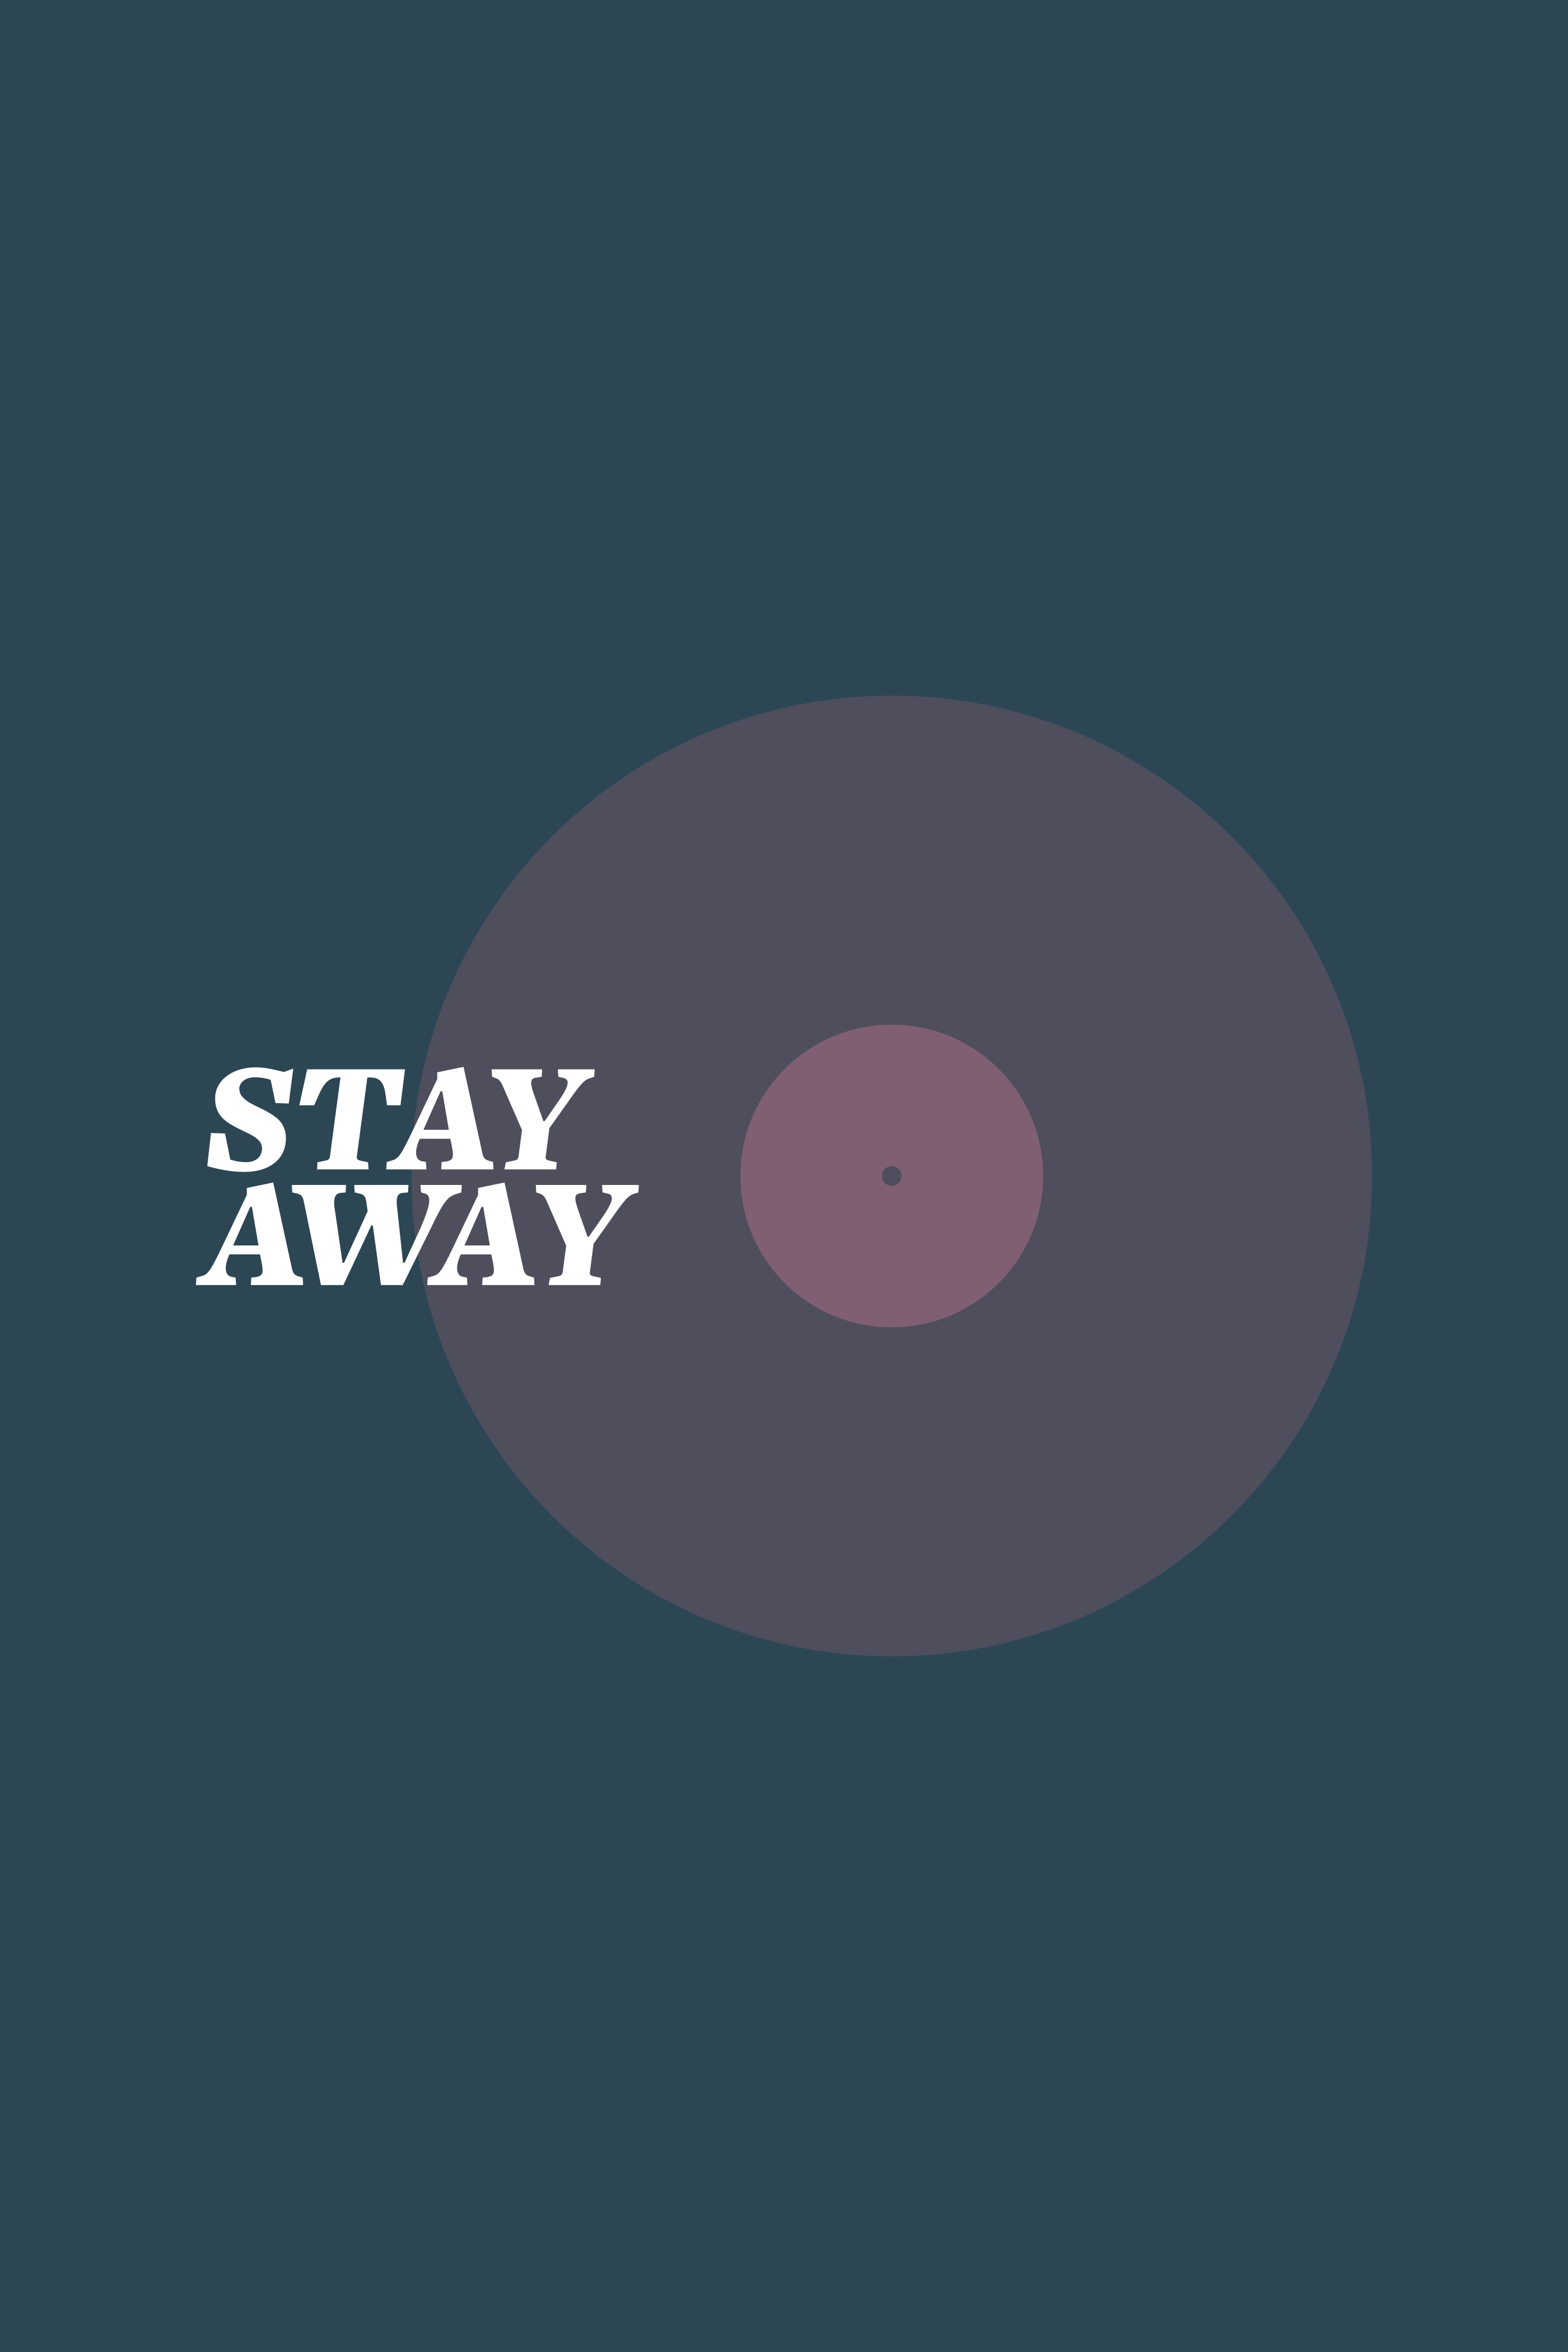 Stay away poster alt 2